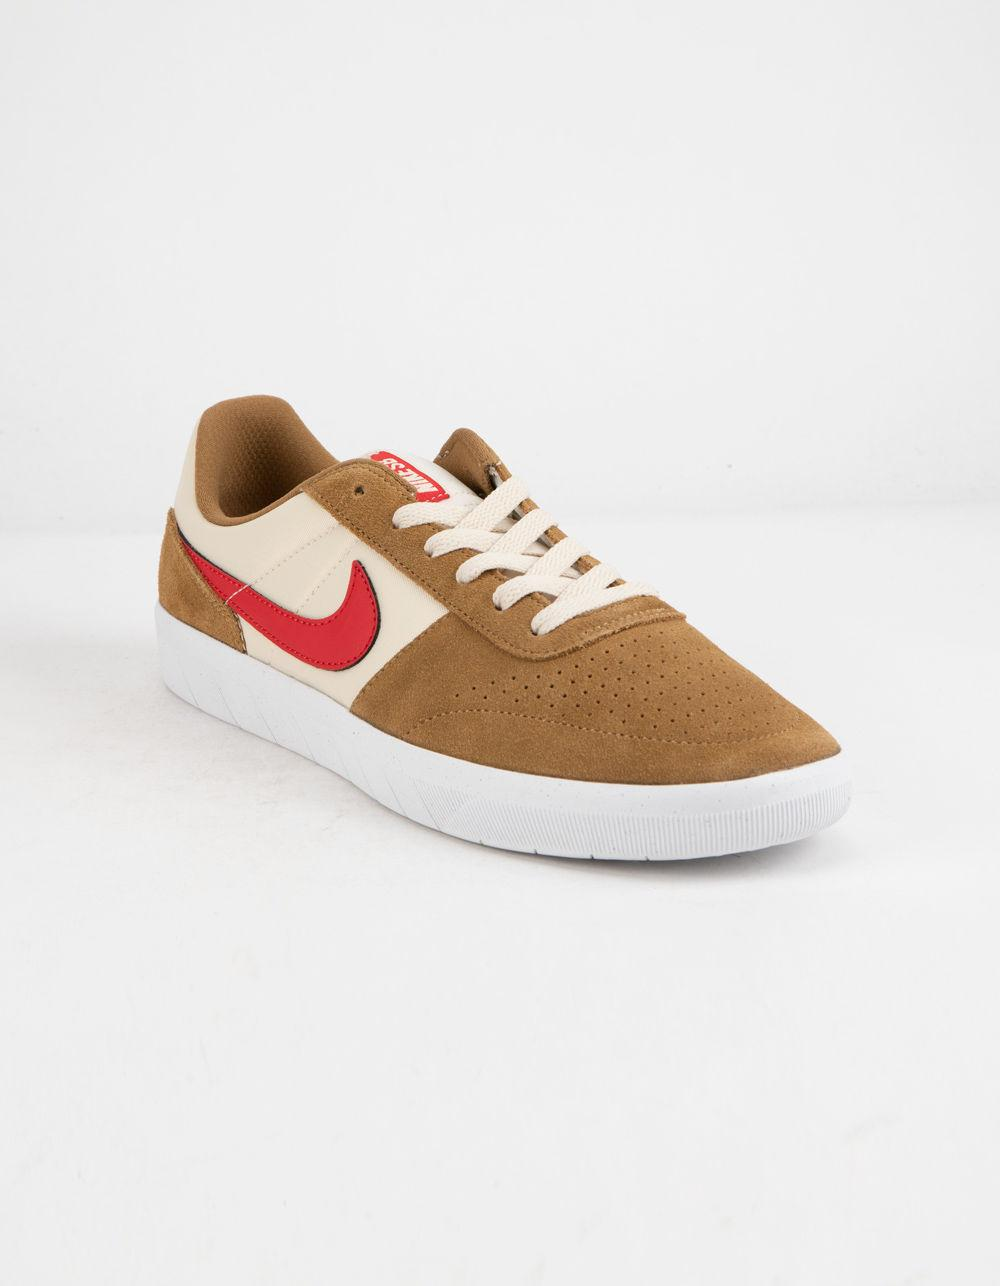 cheaper a0529 44267 Lyst - Nike Team Classic Golden Beige   University Red Mens Shoes for Men